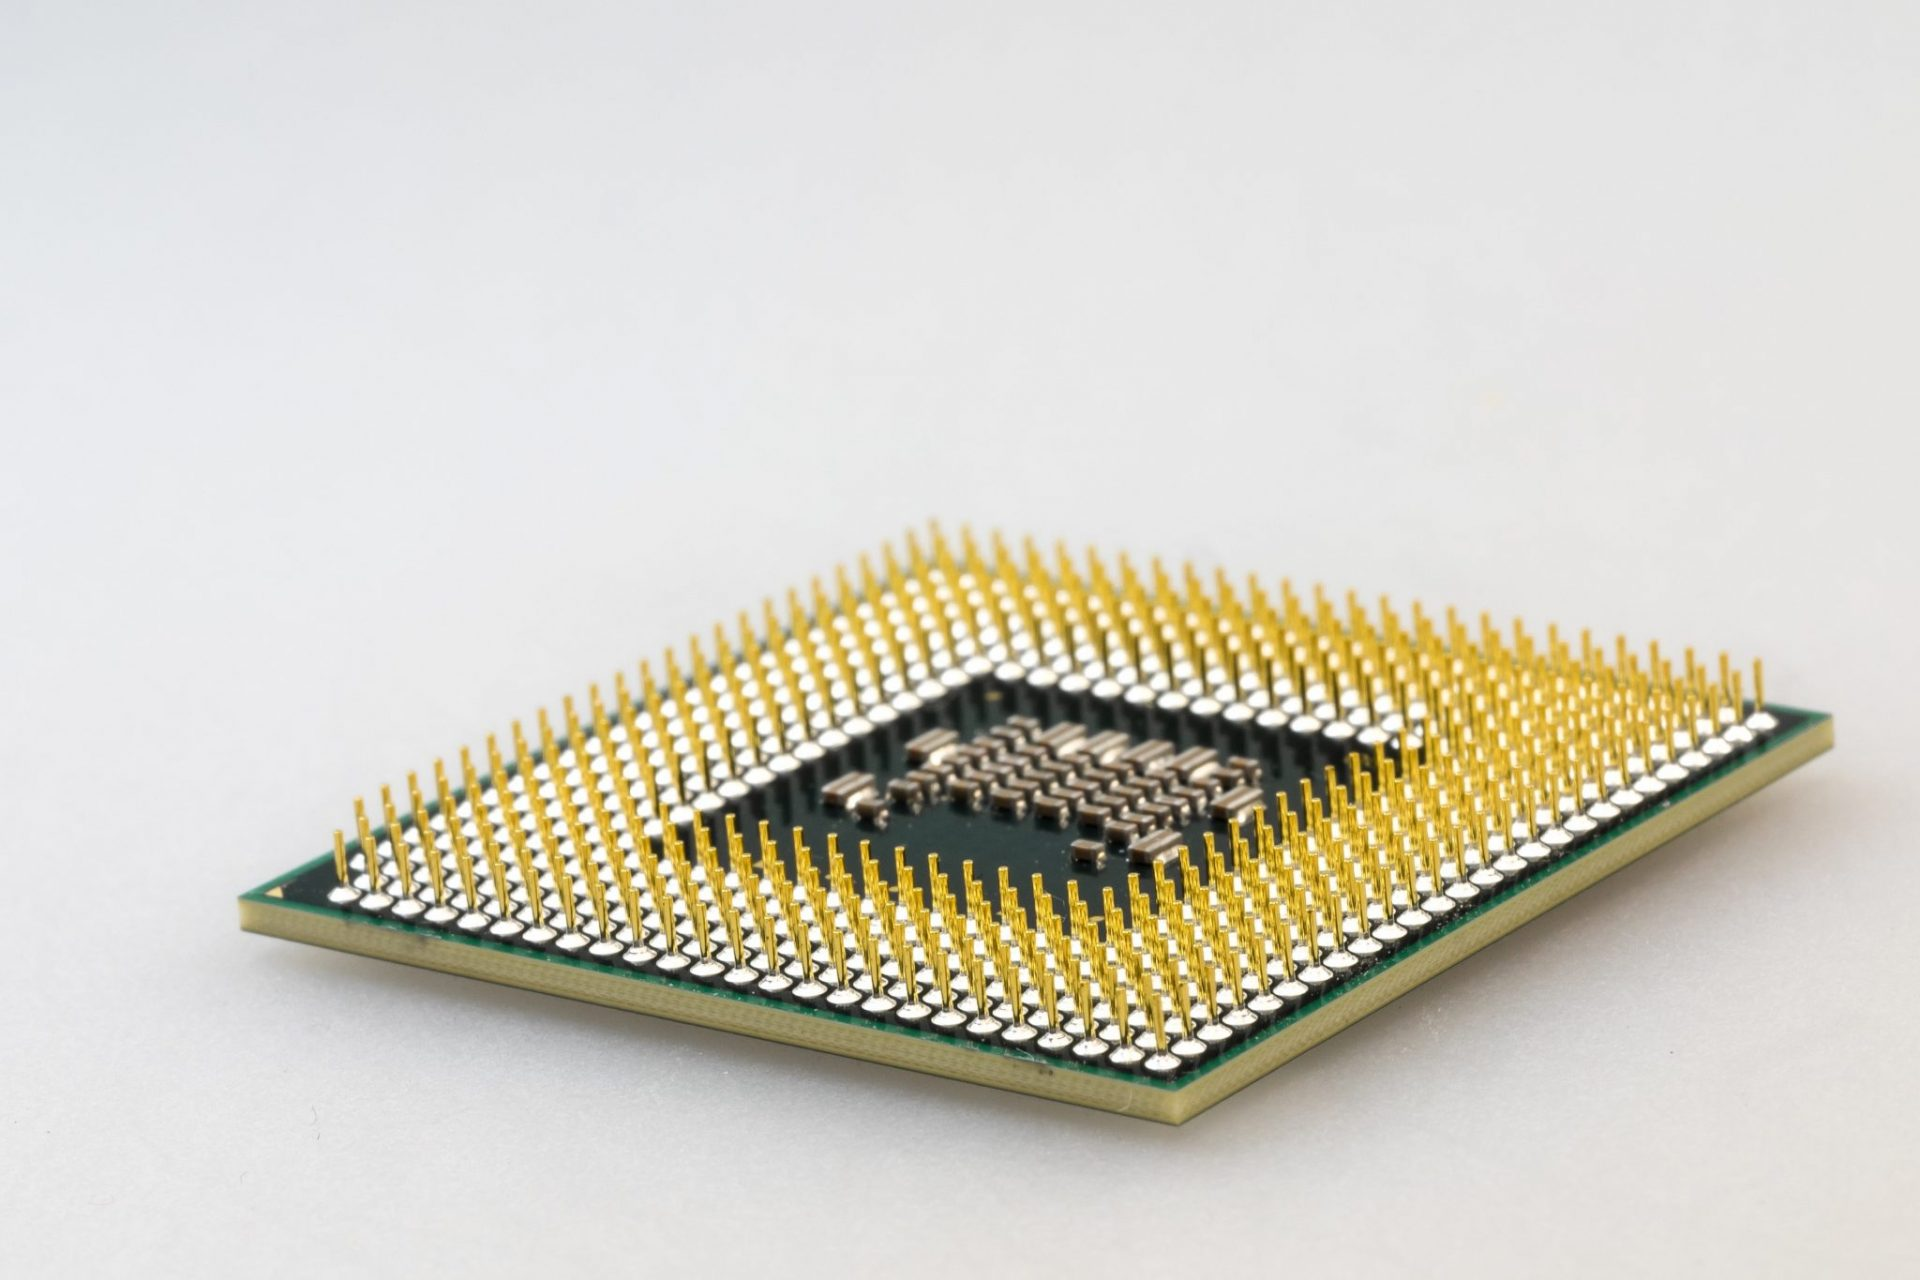 The Rise of In-House Application Processor Design